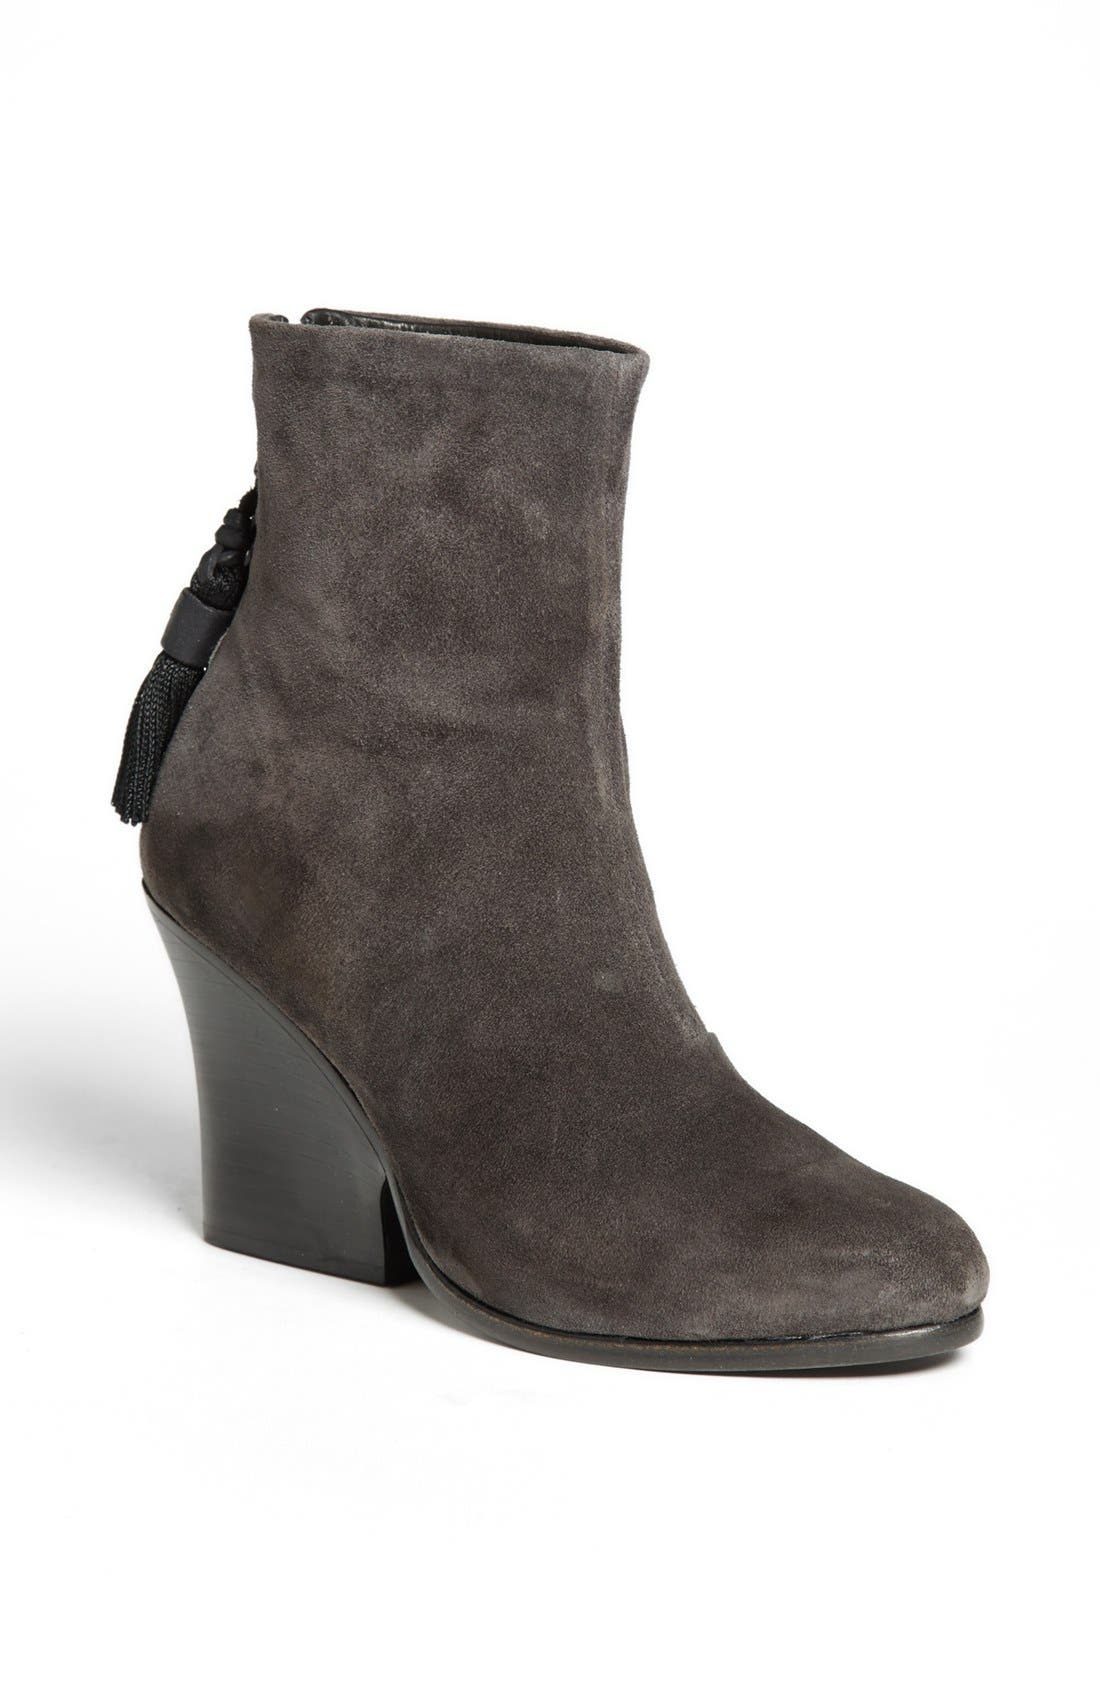 Main Image - rag & bone 'Tacita' Boot